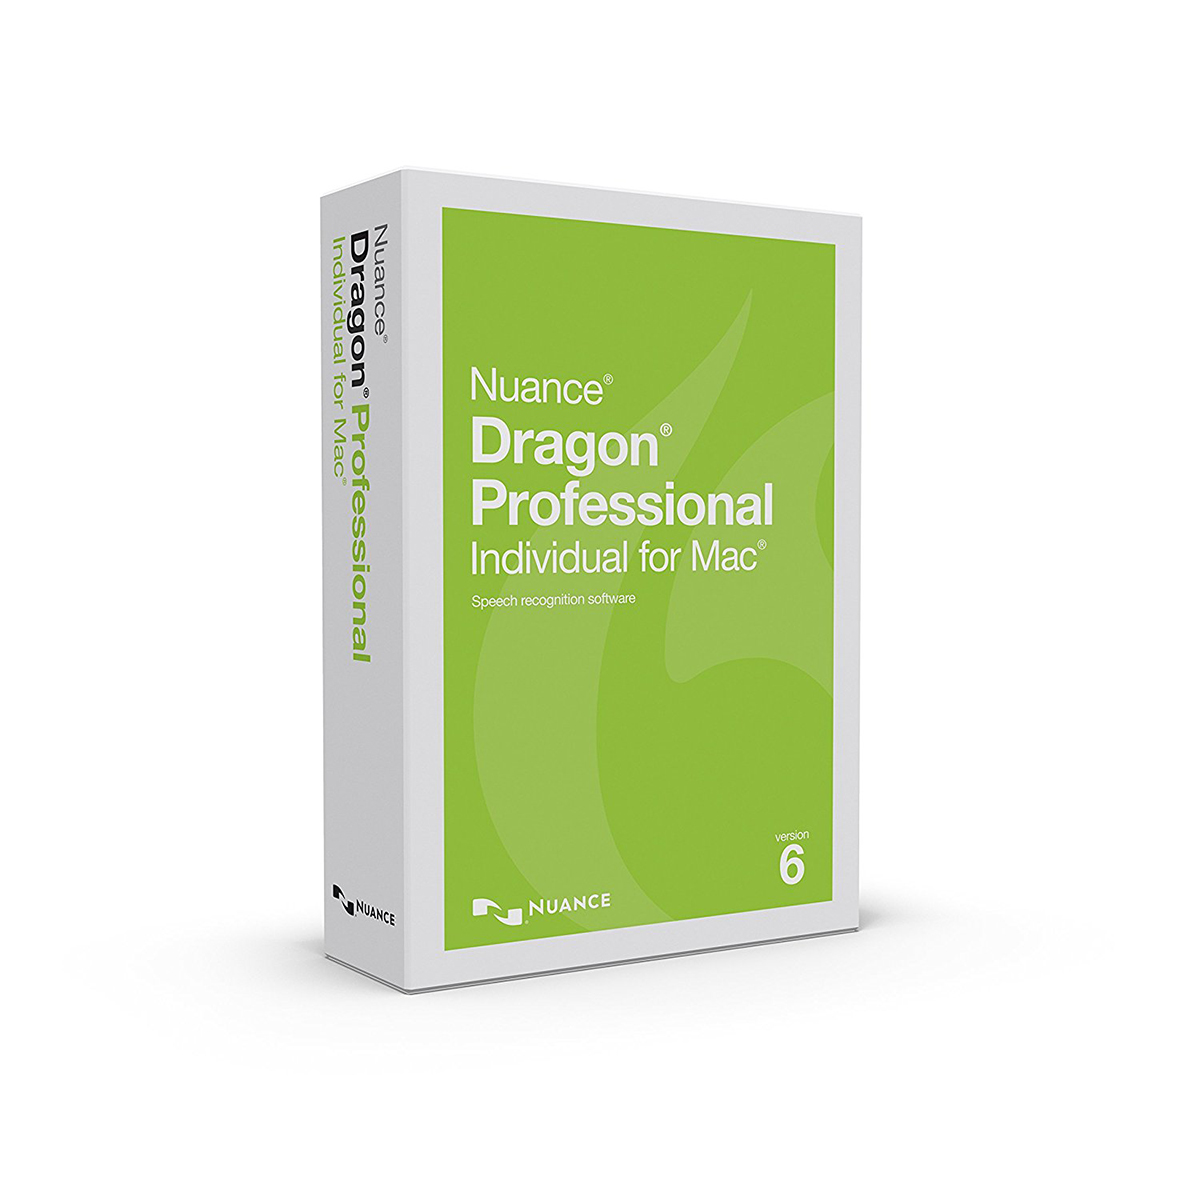 Nuance Dragon Professional Individual 6.0 for Mac English - Upgrade for Mac 4.0 and 5.0